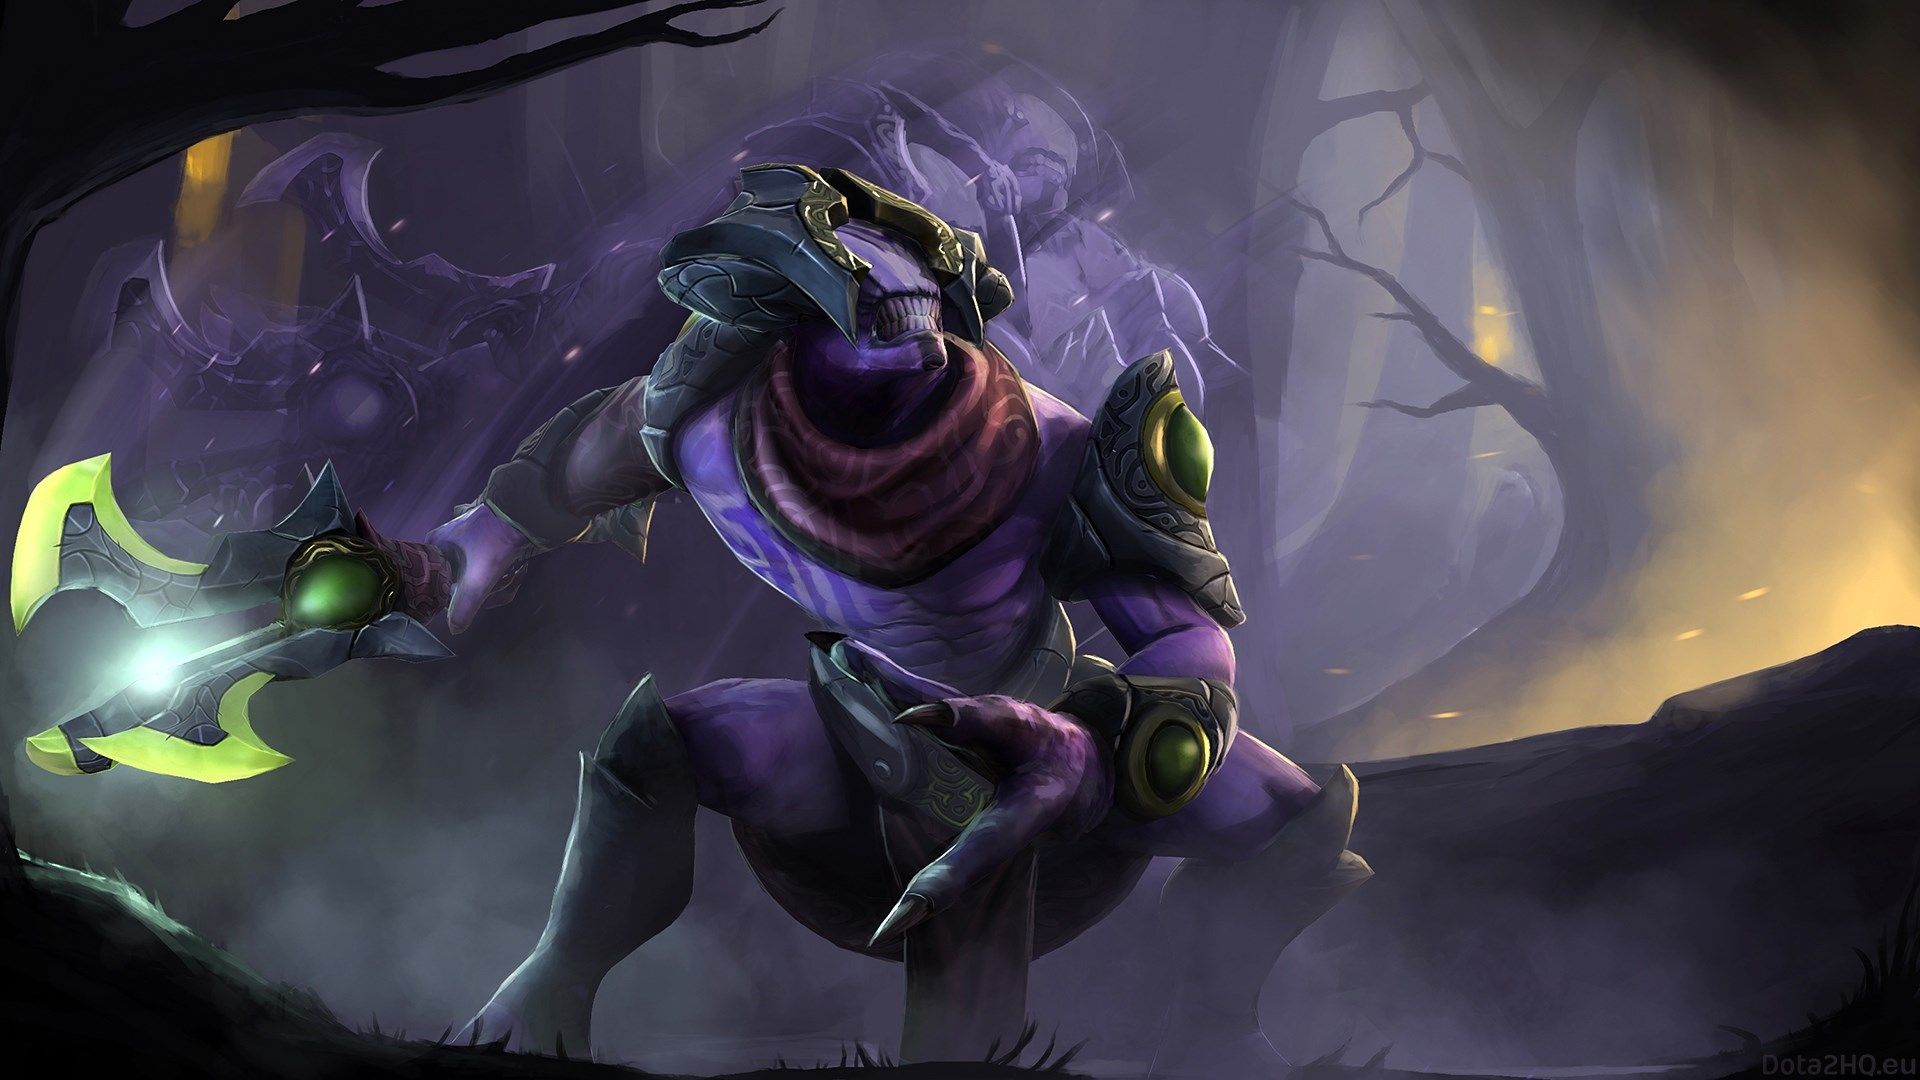 1920x1080 Faceless Void Dota 2 Image Concept Art Characters Dota 2 Defense Of The Ancients